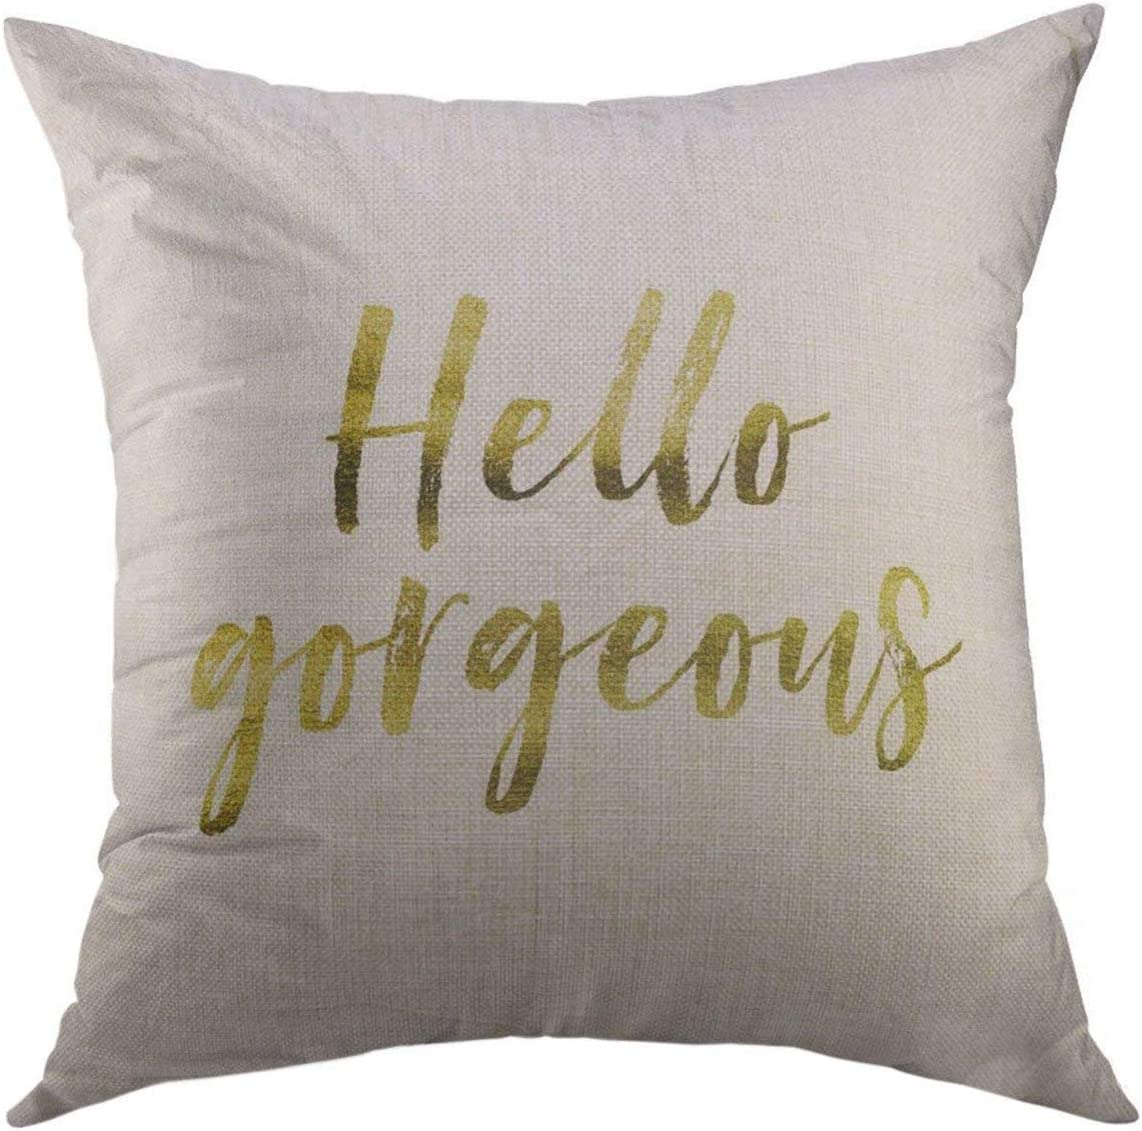 Mugod Decorative Throw Pillow Cover for Couch Sofa,Saying Hello Gorgeous Gold Inspirational Motivation Quote on Plain White Beautiful Home Decor Pillow Case 18x18 Inch